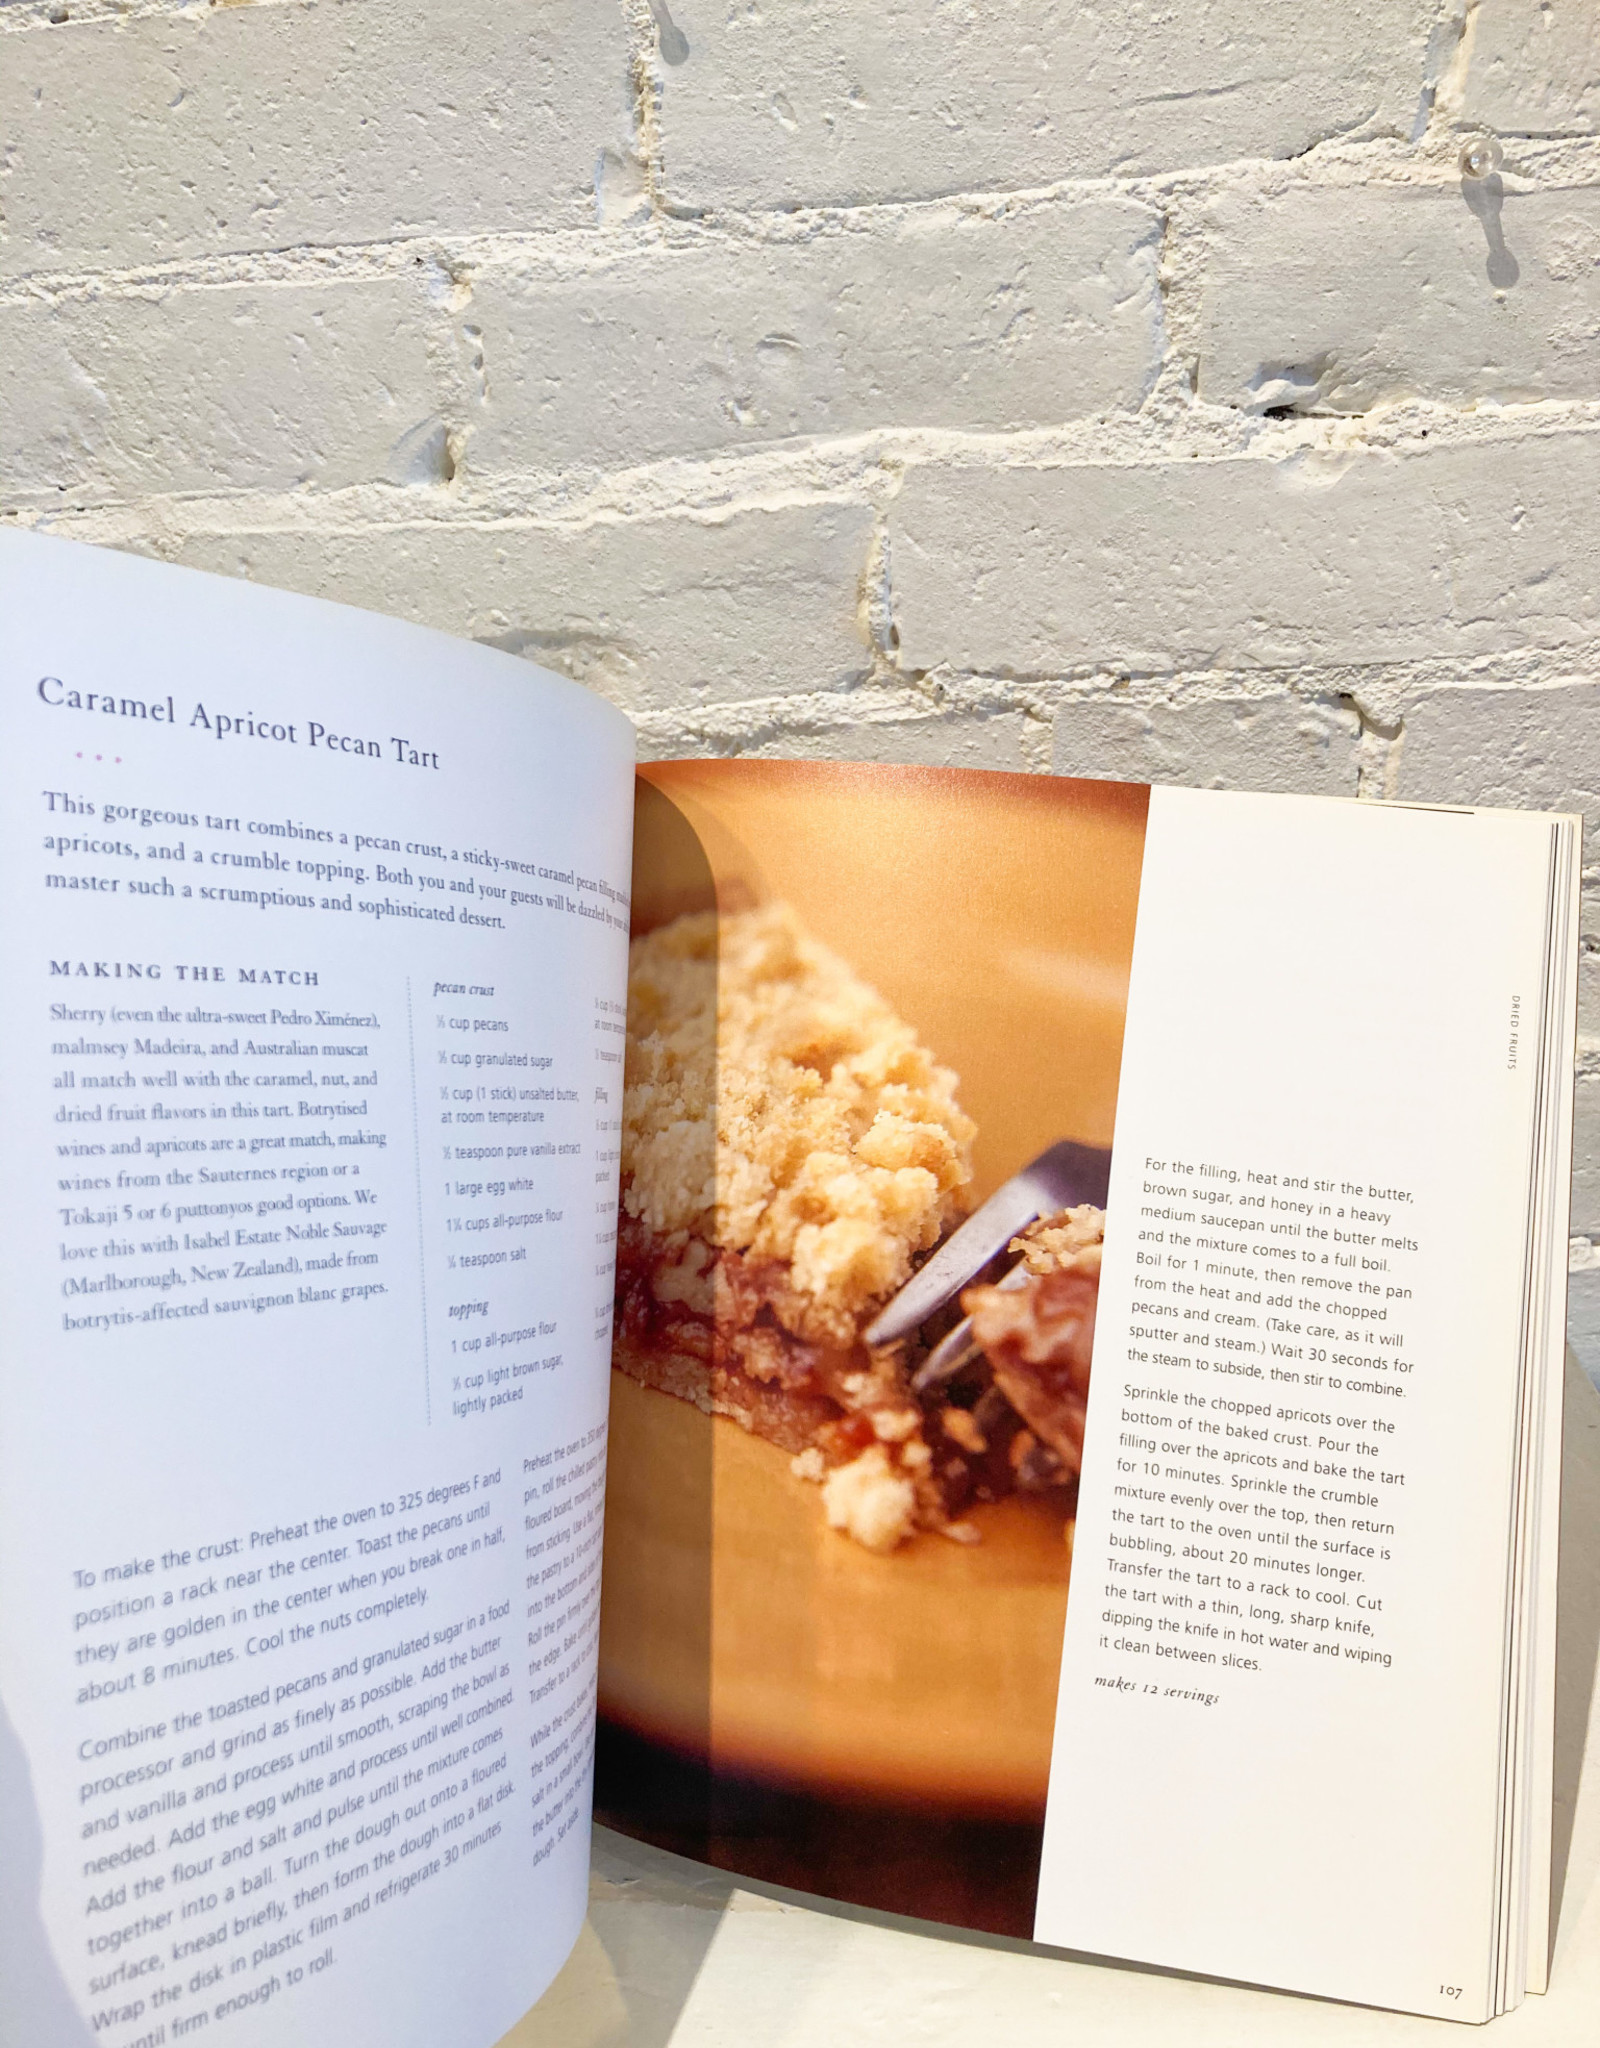 The Wine Lover's Dessert Cookbook by Mary Cech and Jennie Schacht